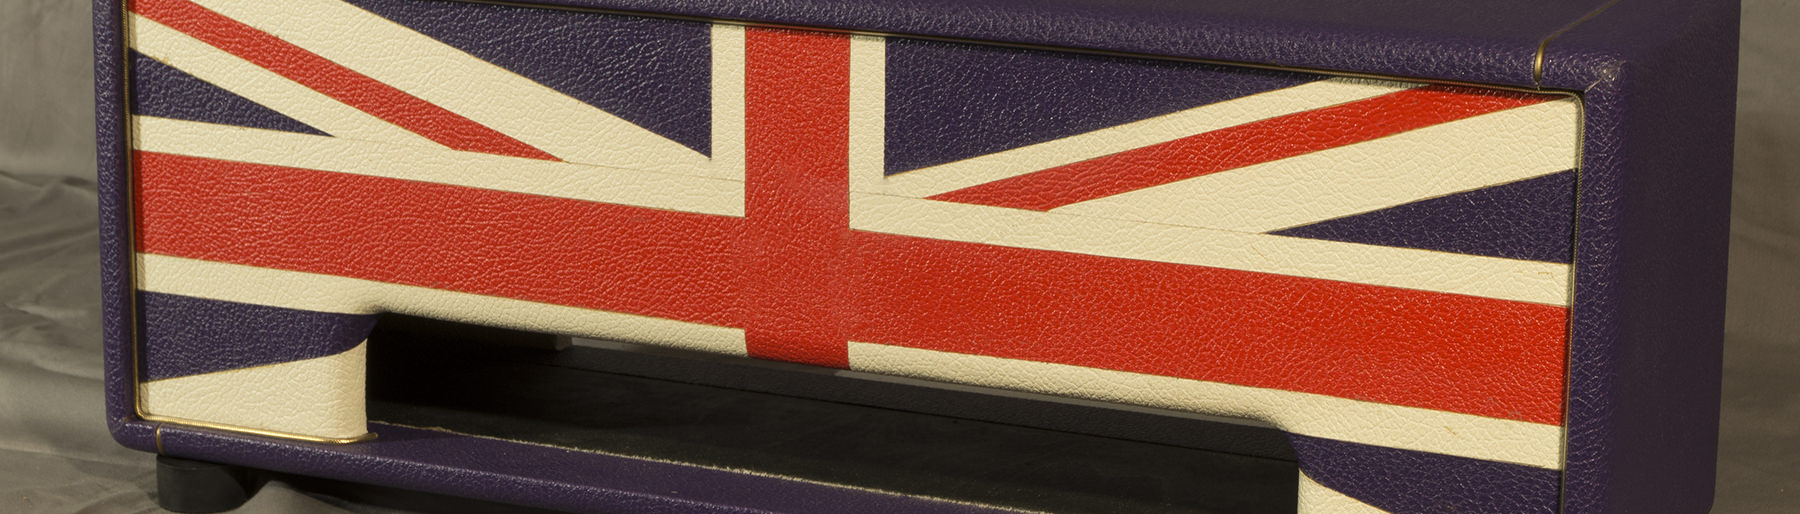 Union Jack Gitarrentop-Gehäuse in Lila